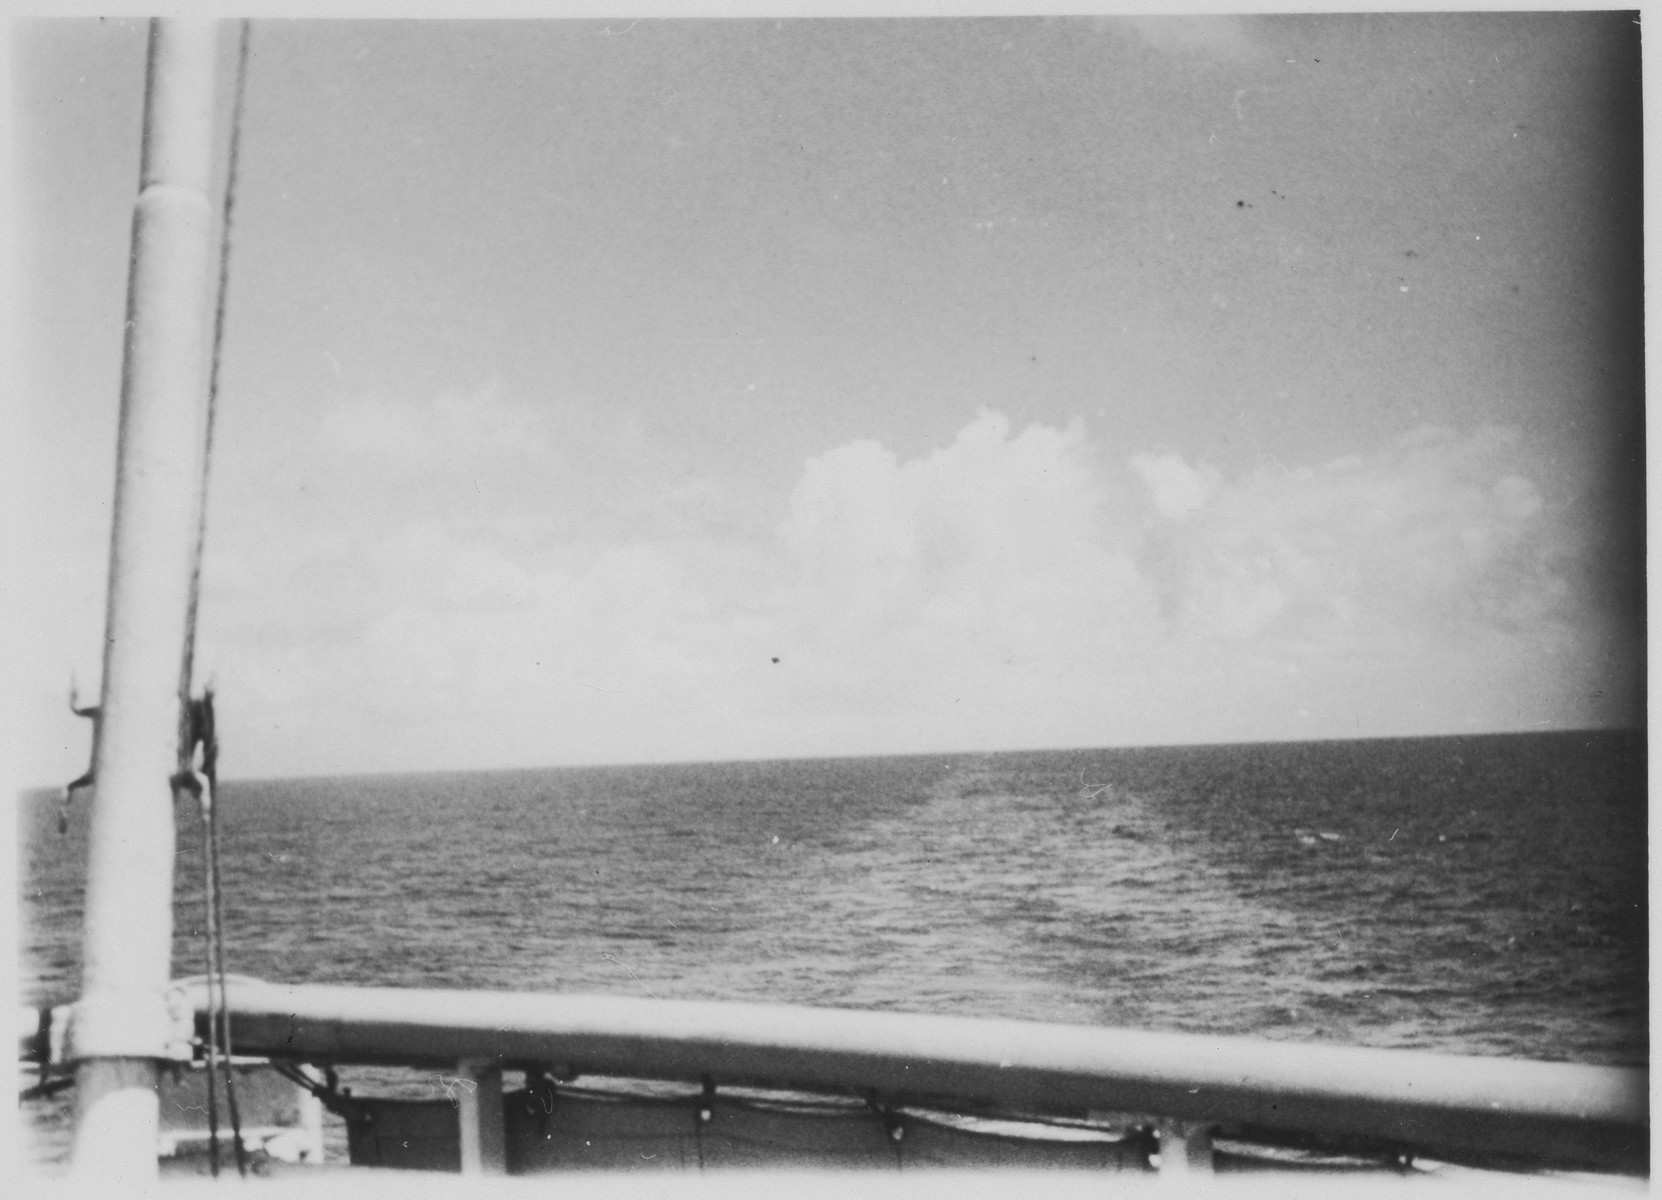 View of the ocean taken from the deck of the MS St. Louis.